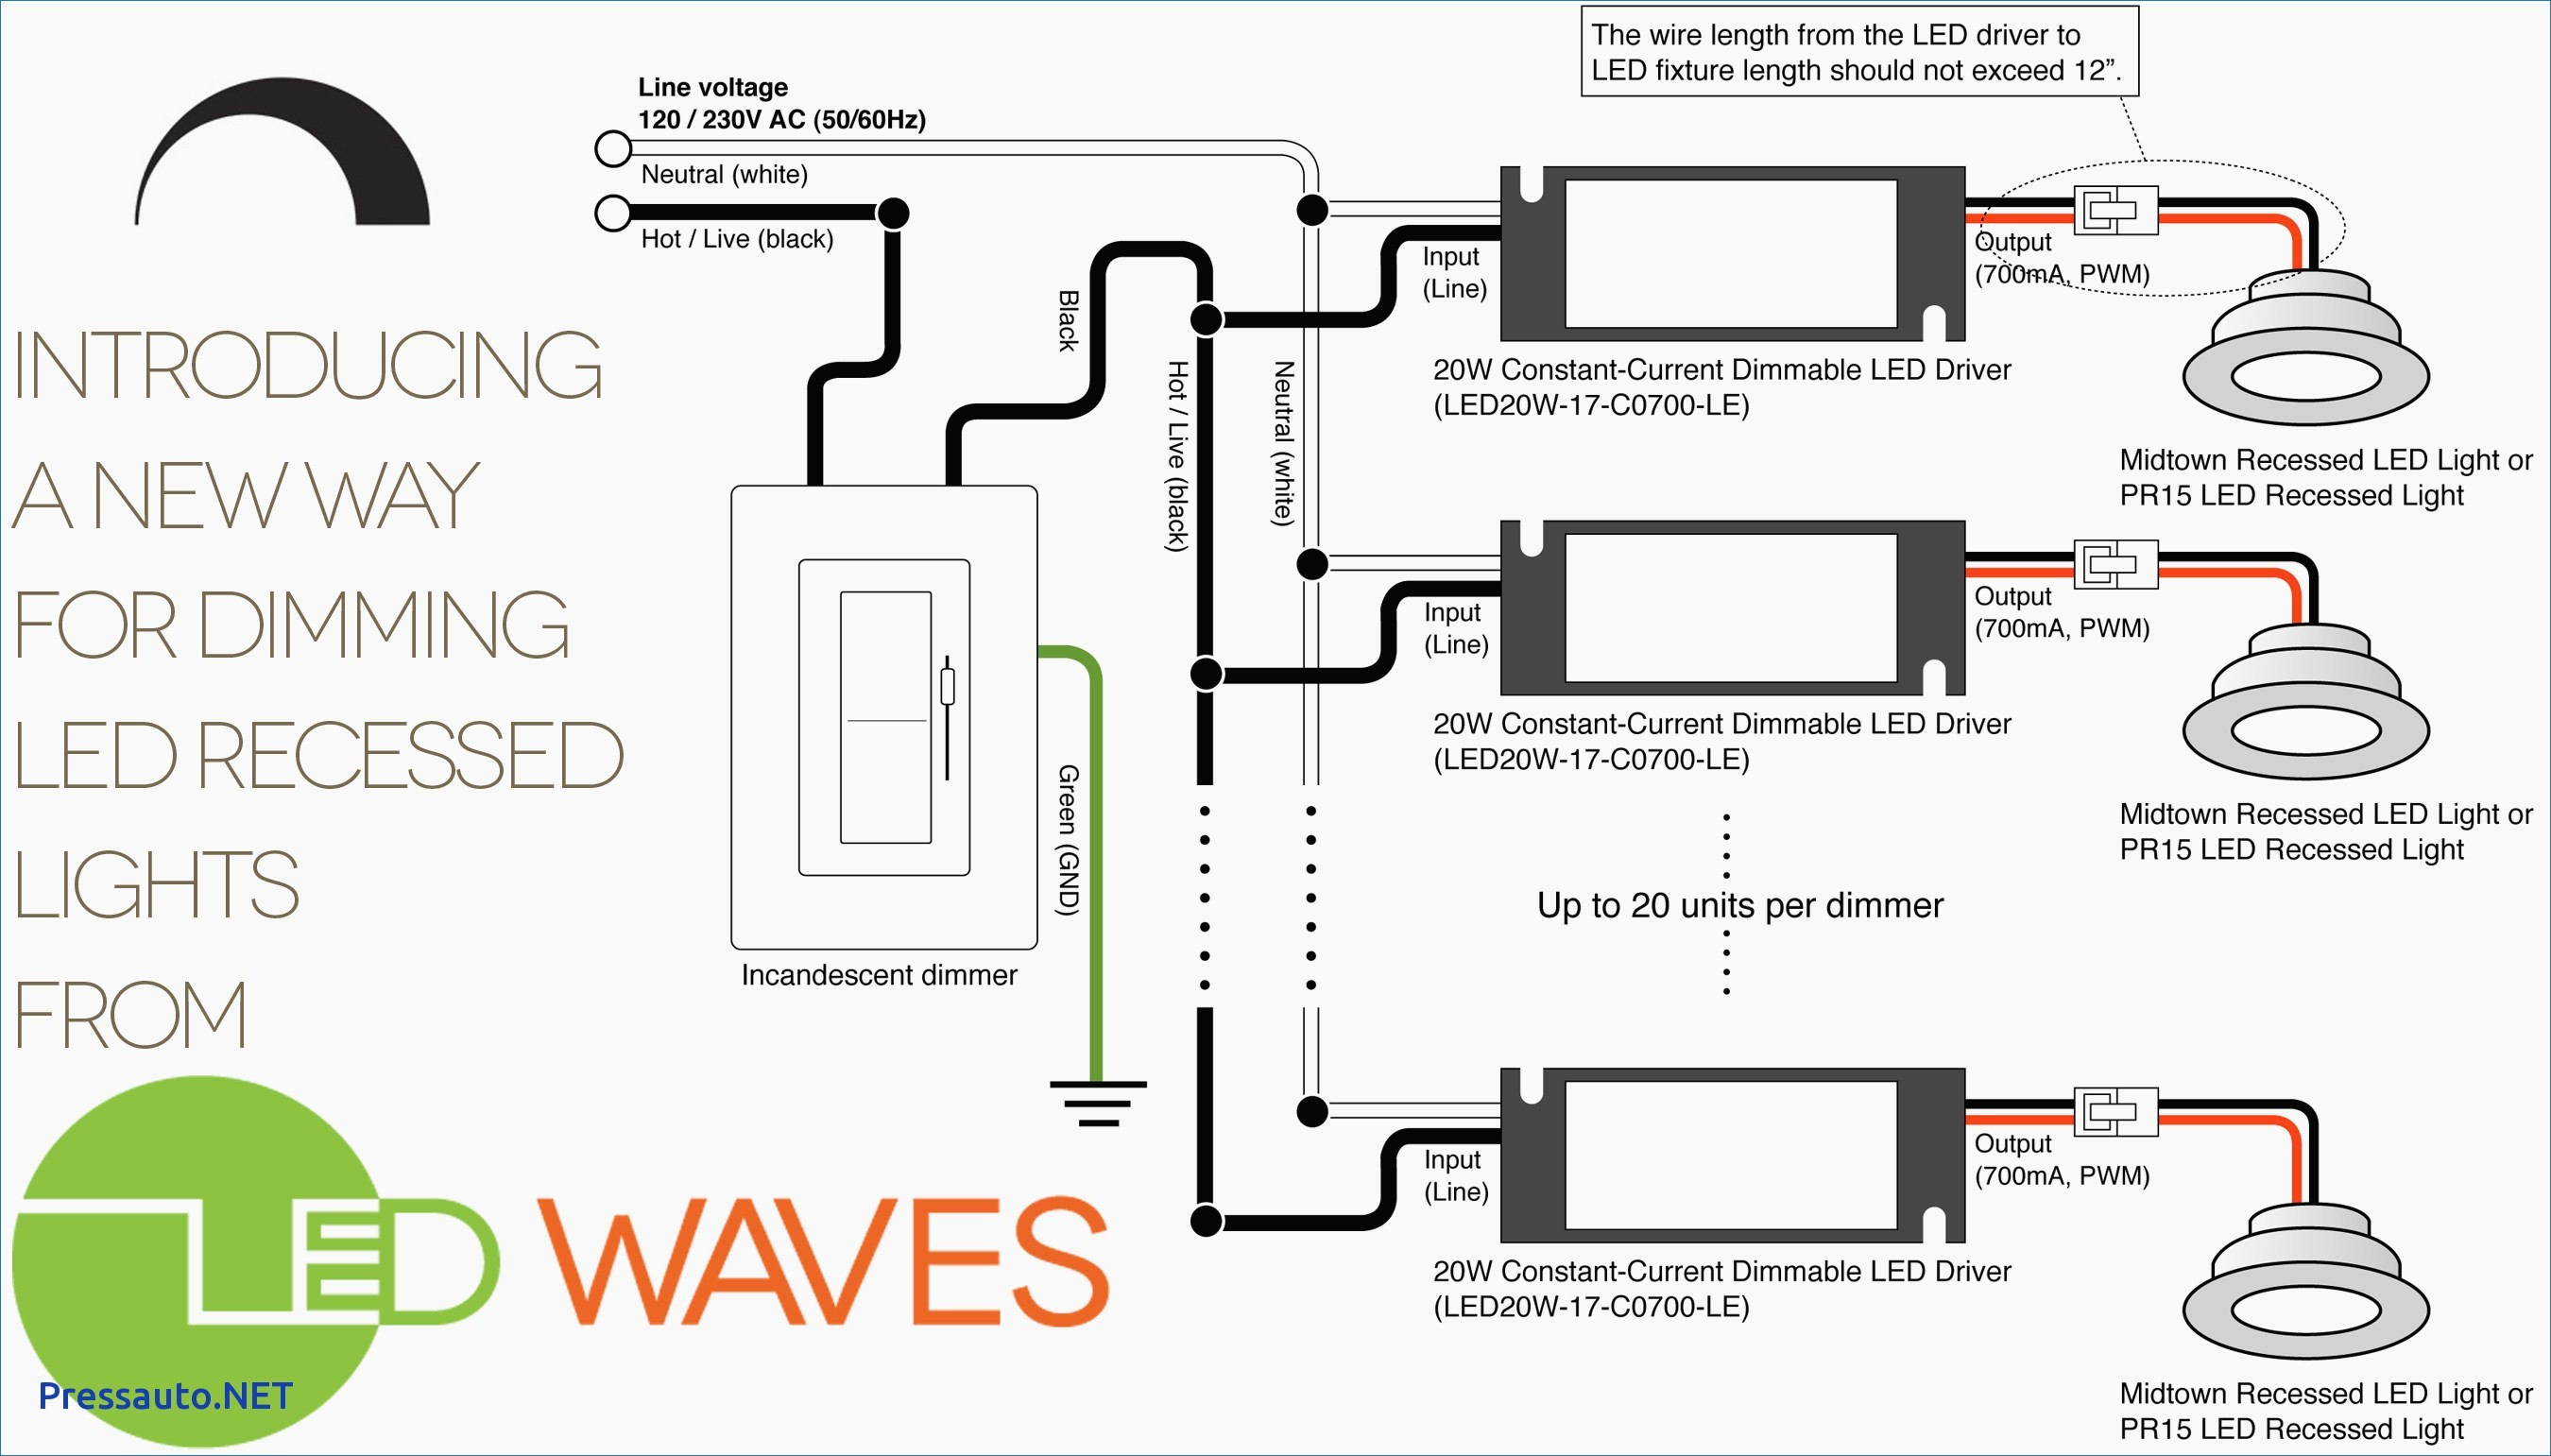 Led Driver Wiring Diagram New Circuit Light Controller Mark 10v Dimming Ballasts Ballast Lutron Dimmer 0 Of